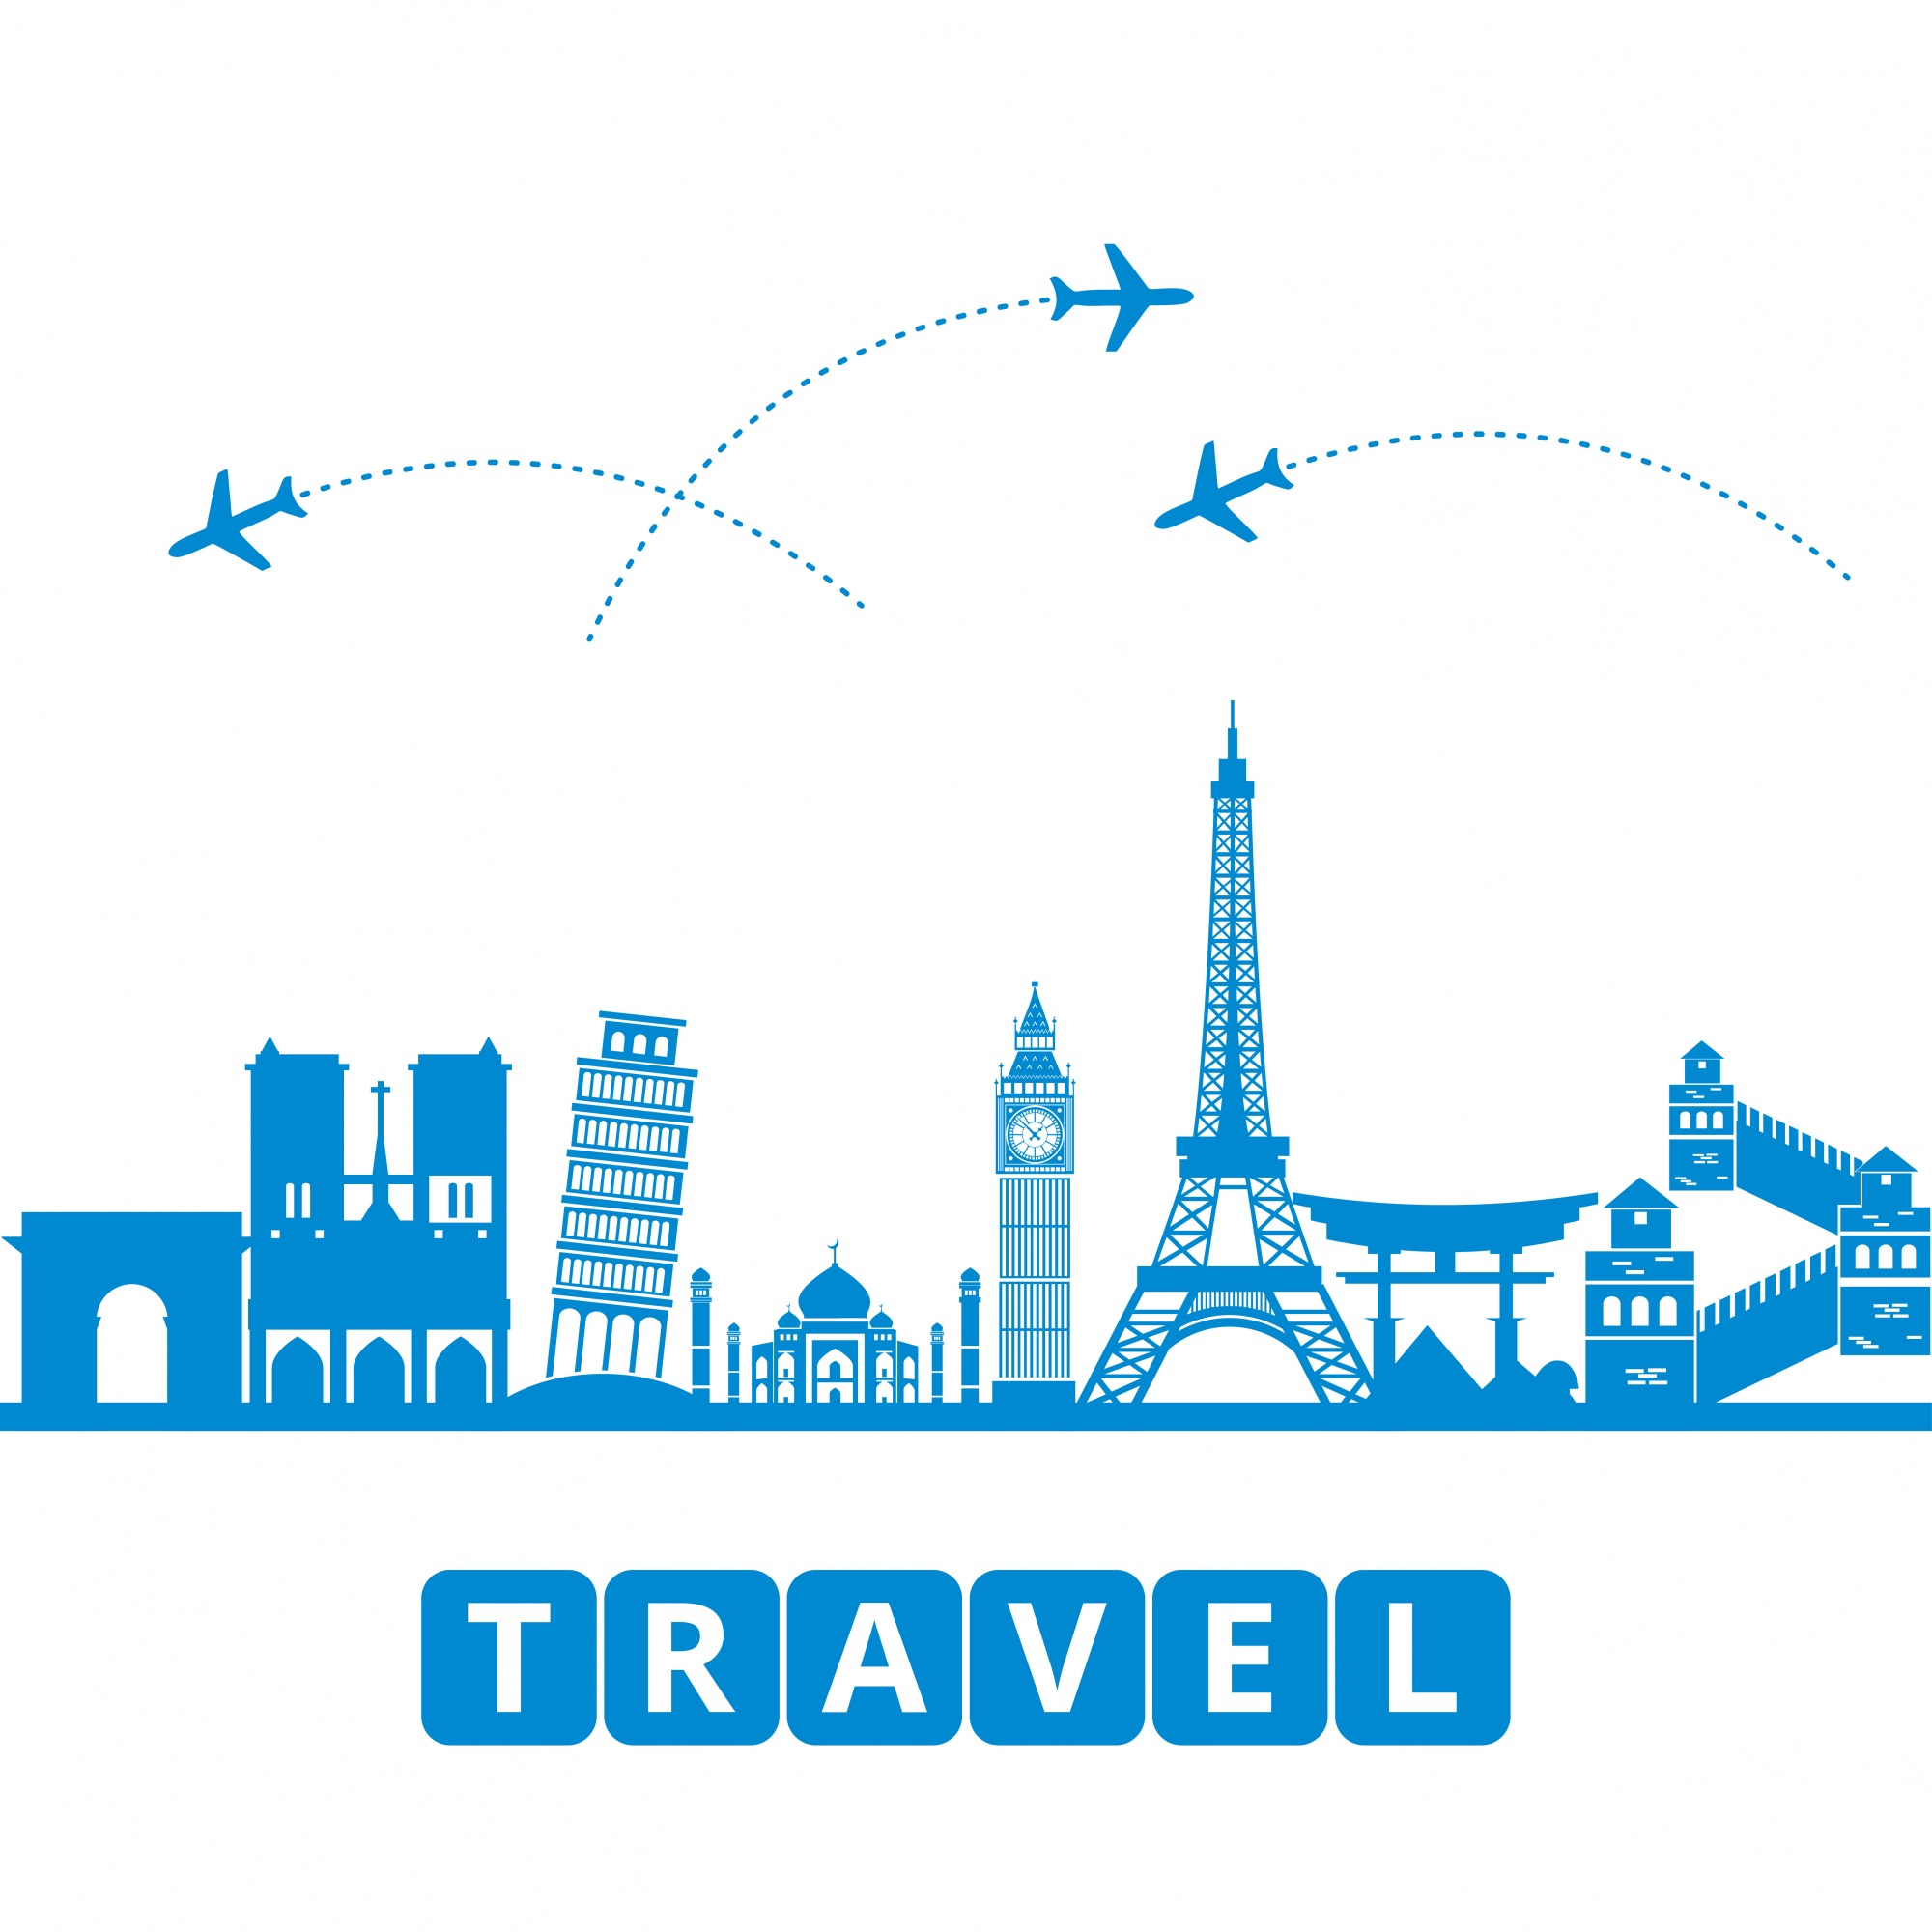 Travel concept with landmarks